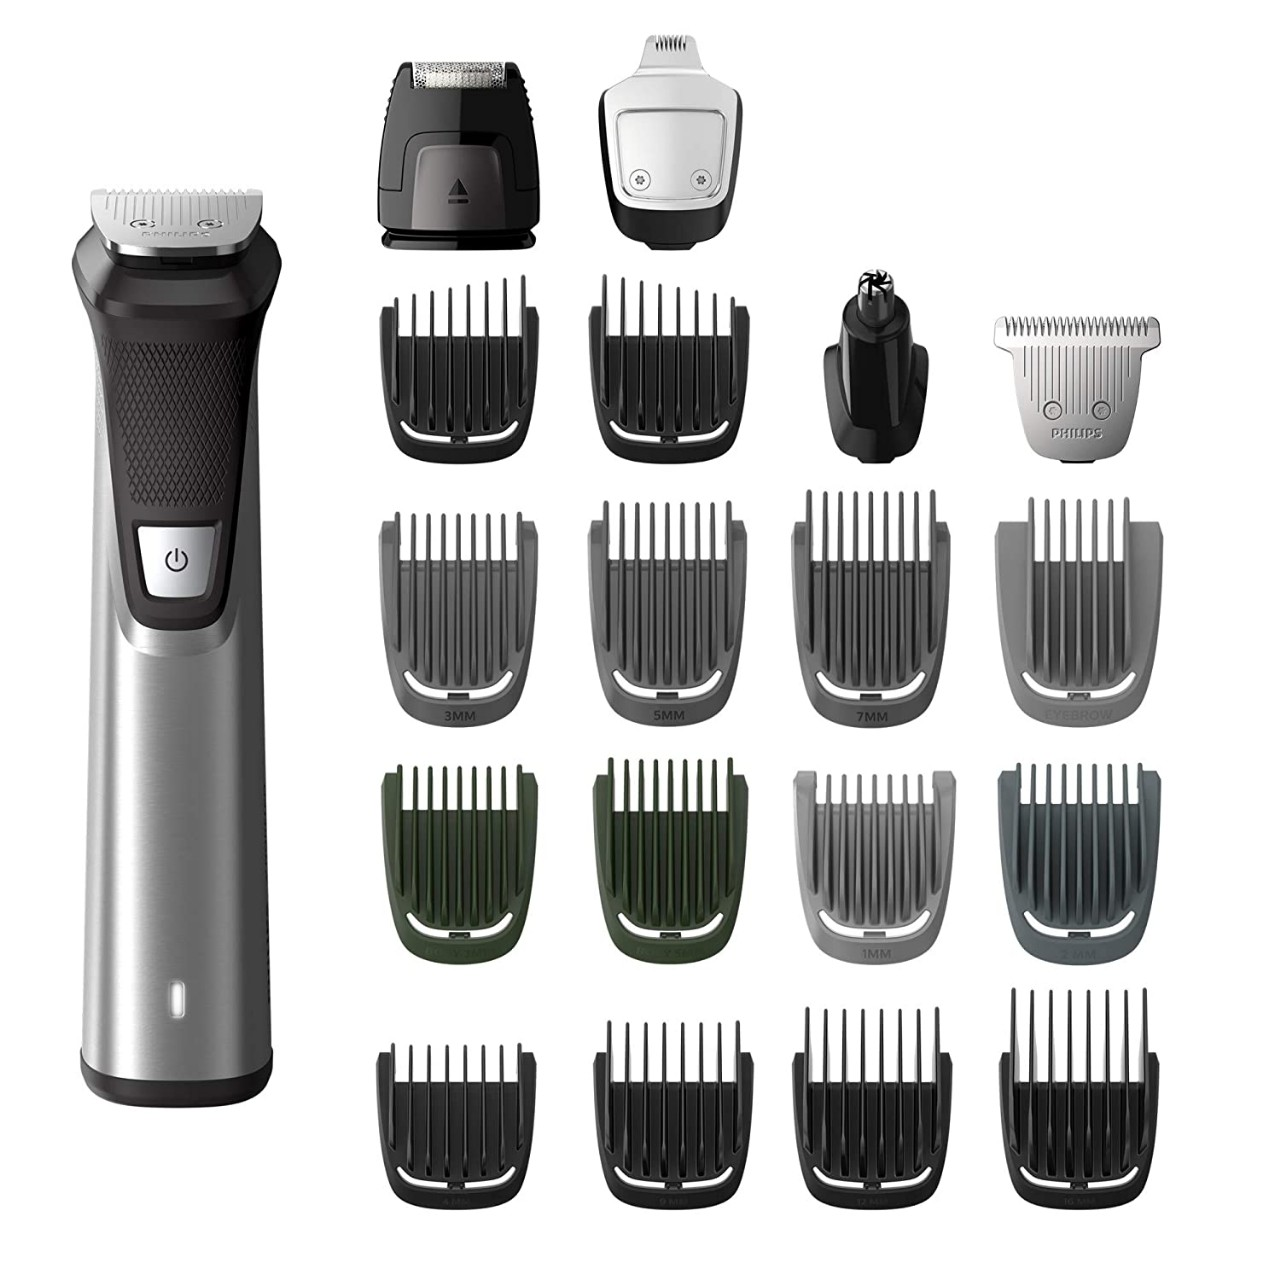 Philips Norelco MG7750/49 Multigroom Series 7000, Men's Grooming Kit with Trimmer for Beard, Head